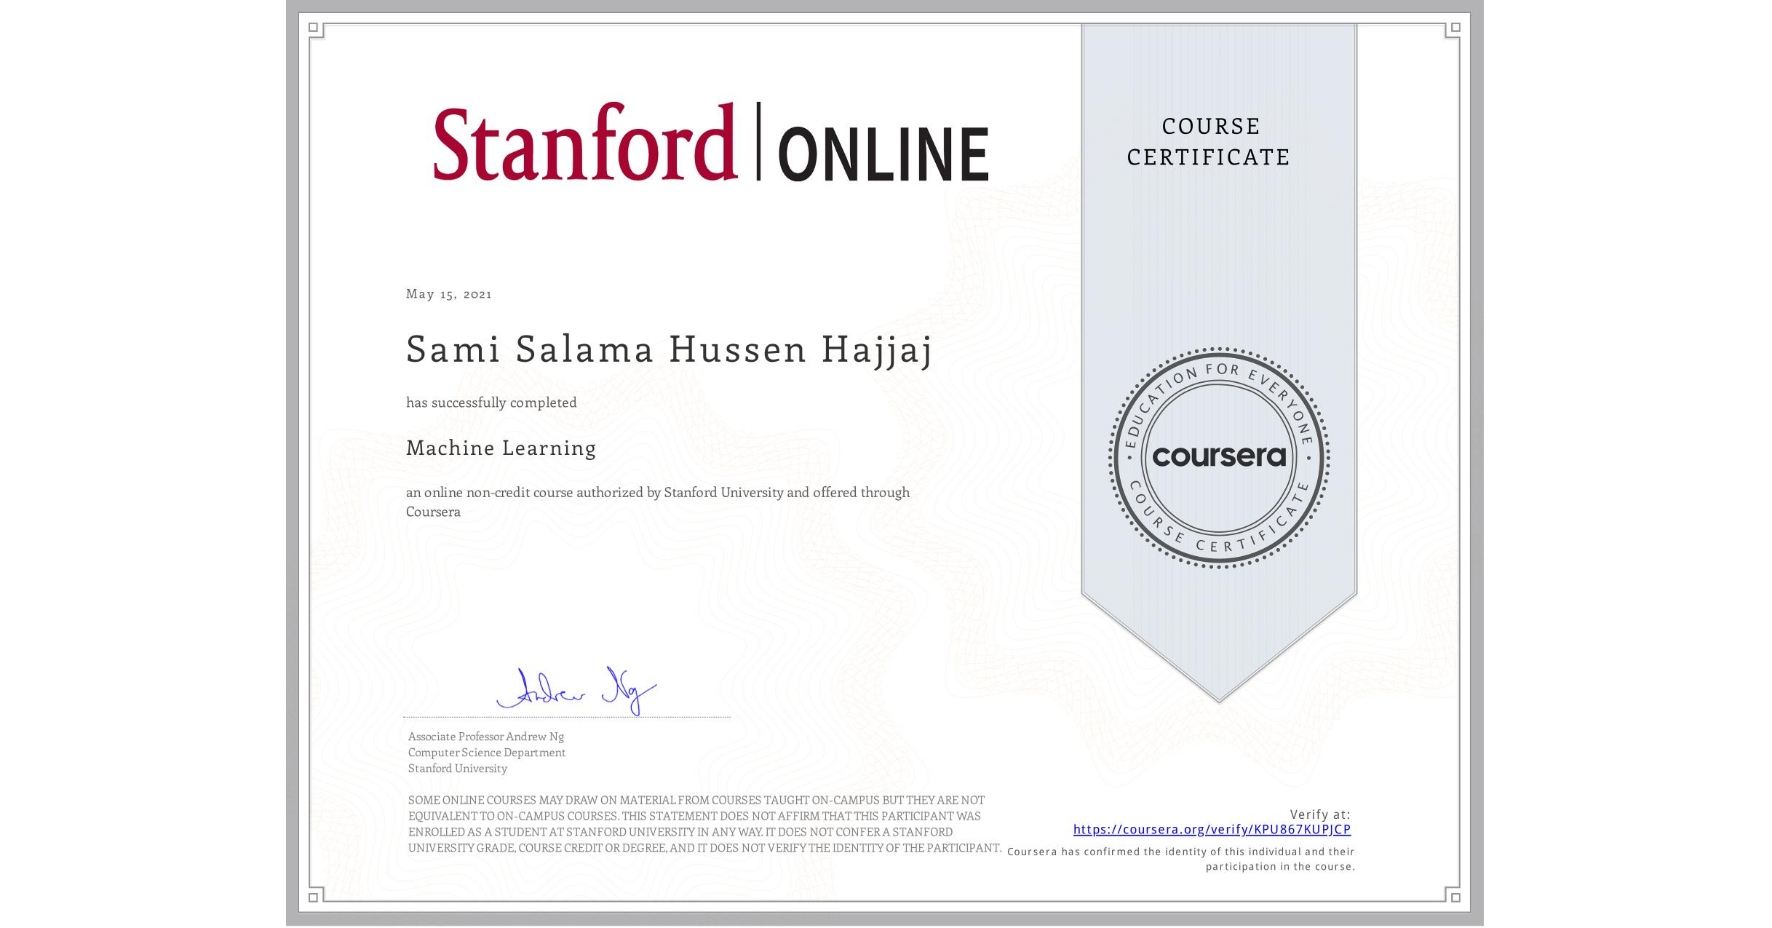 View certificate for Sami Salama Hussen Hajjaj, Machine Learning, an online non-credit course authorized by Stanford University and offered through Coursera